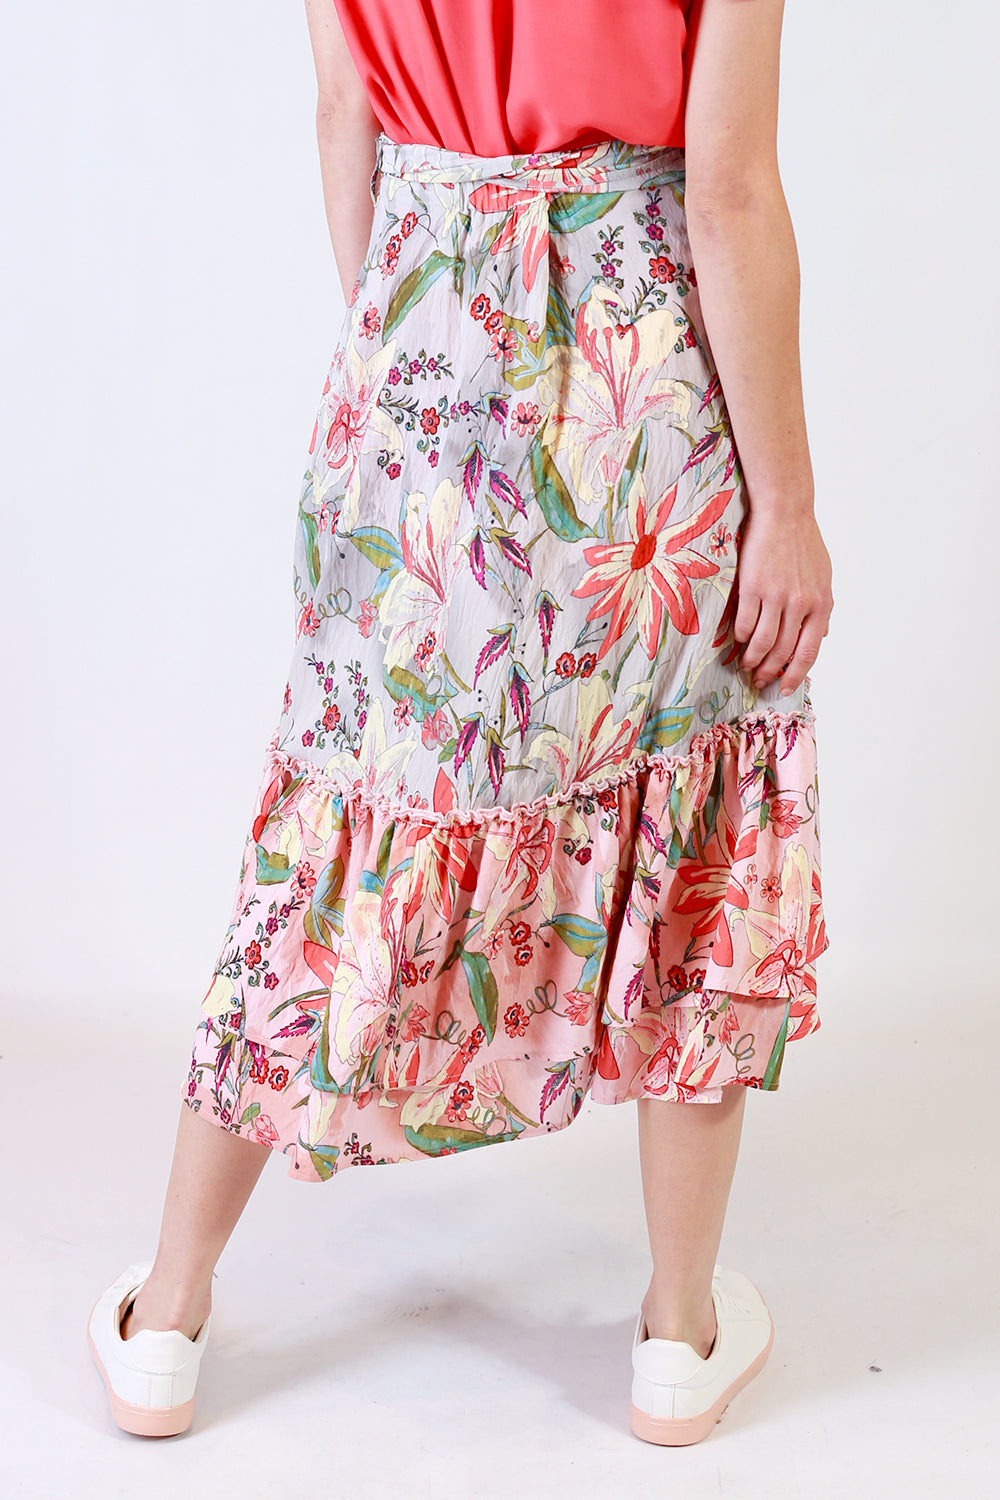 Ink Me Up Skirt  | Annah Stretton Skirts NZ | Ruffle Wrap Skirt NZ | Summer Skirt NZ